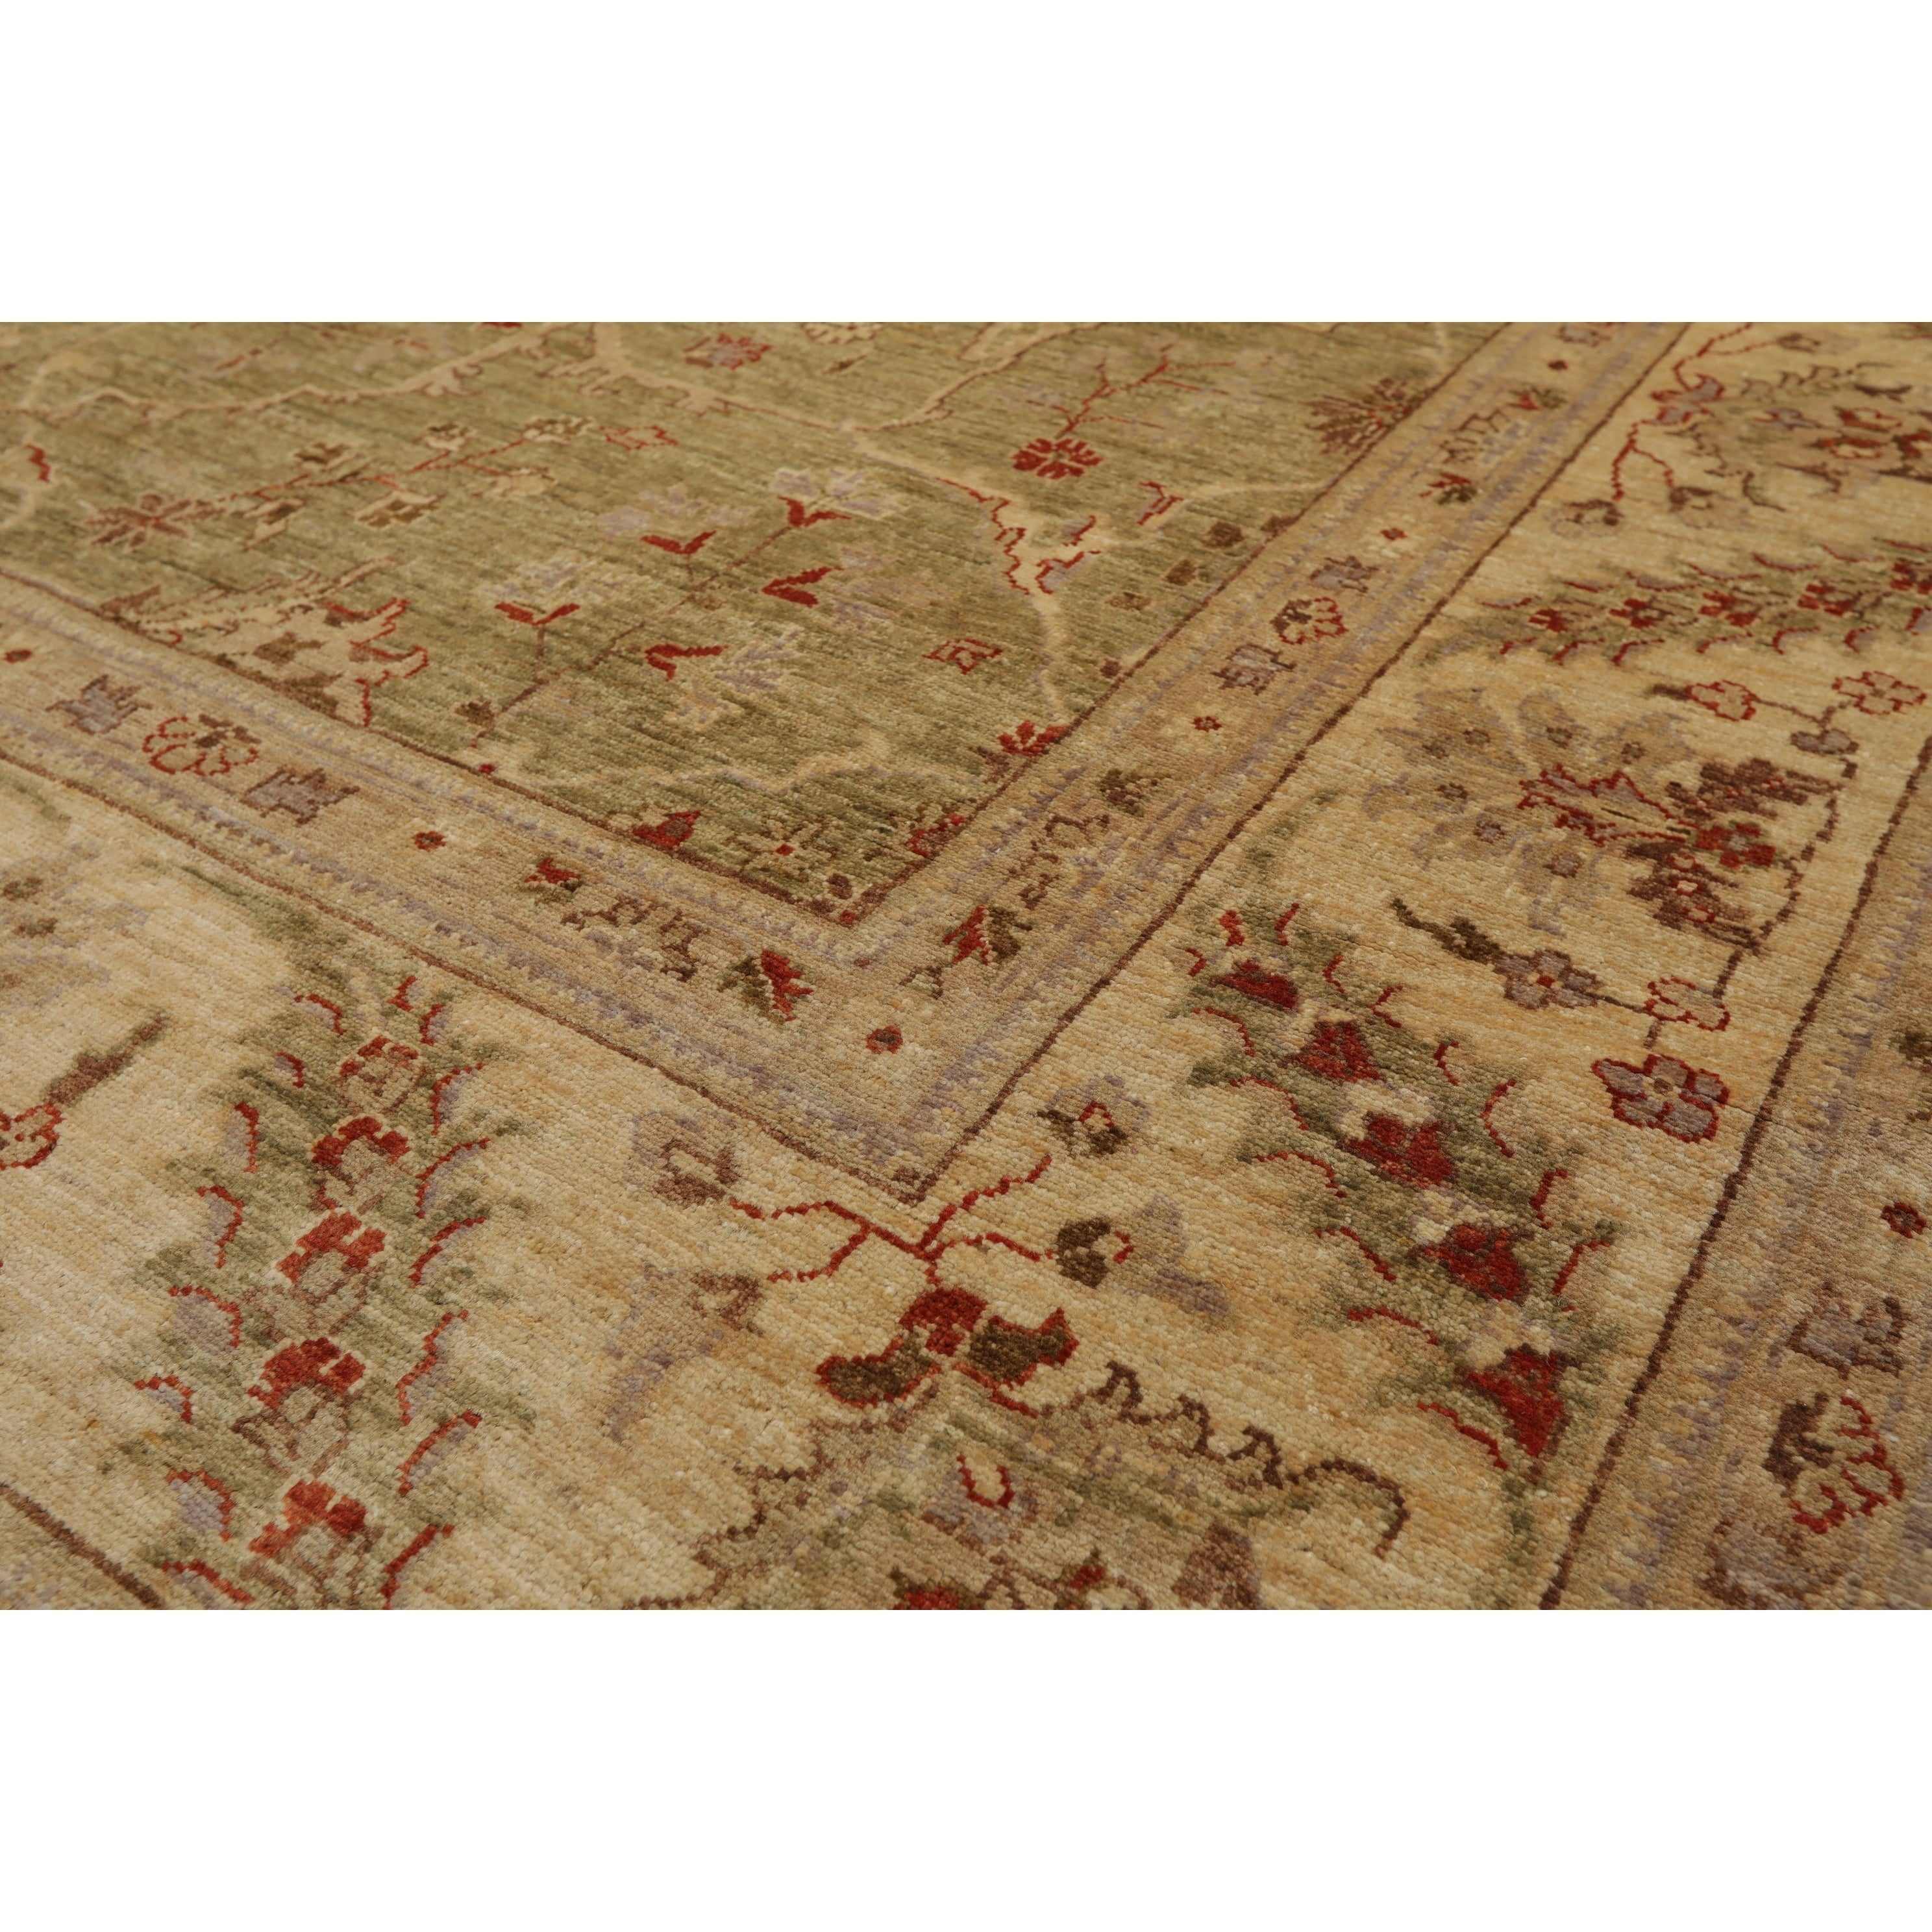 Peshawar Hand Knotted Sage Light Gold Wool Persian Oriental Area Rug 8x10 07 11 X 09 09 On Sale Overstock 31030193